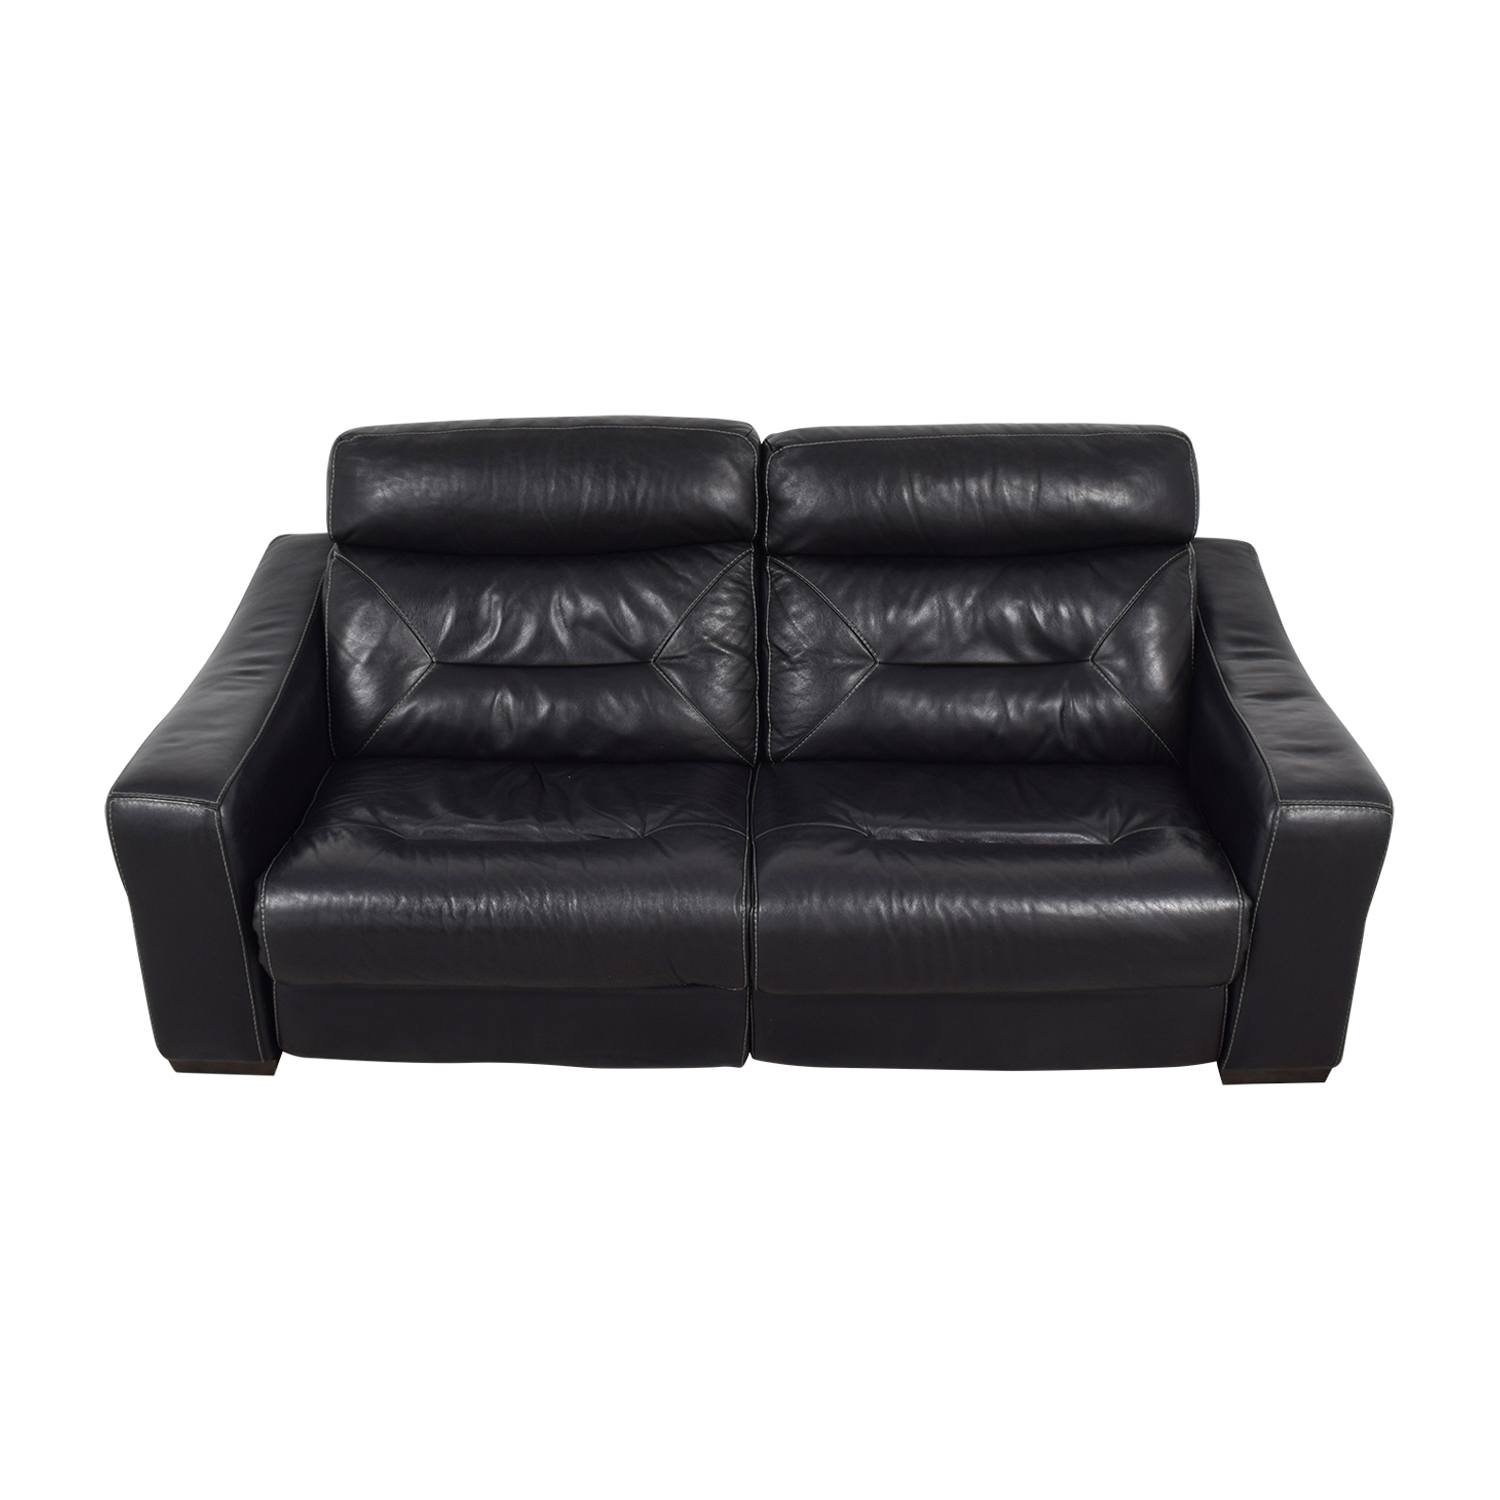 Macy's Black Leather Recliner Sofa / Chairs